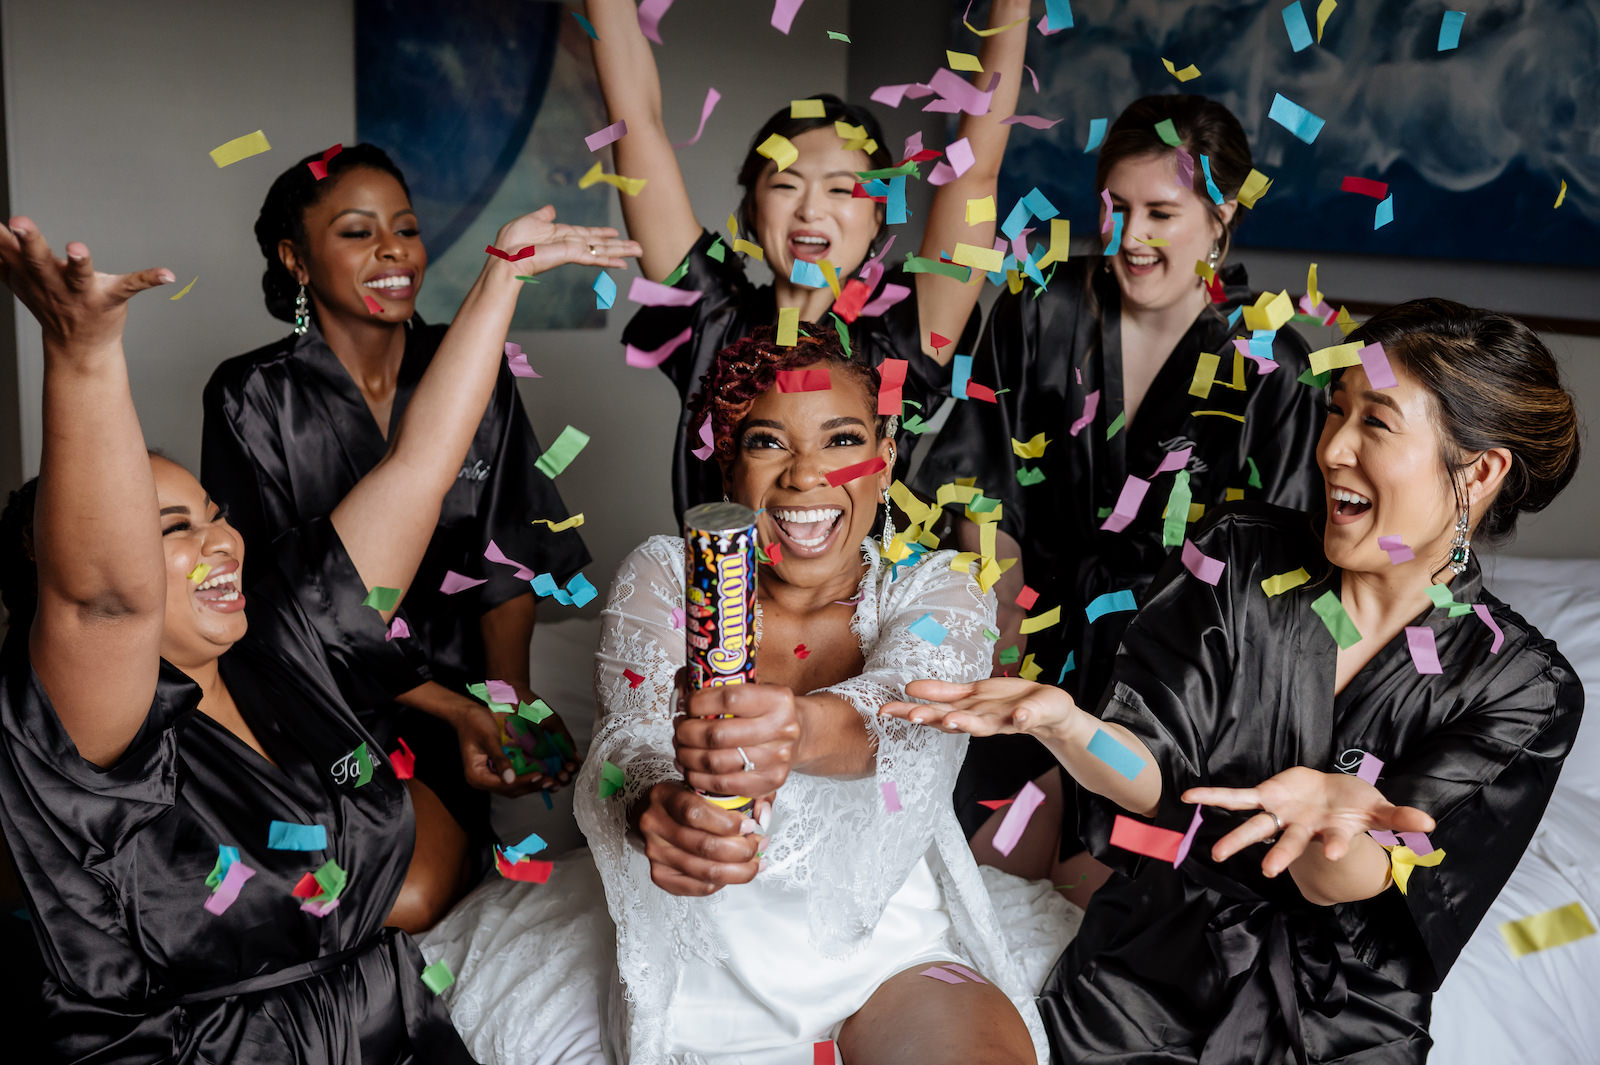 Bride and Bridesmaids Getting Ready in Black Silk Robes and White Lace Robe with Confetti Cannon Popper